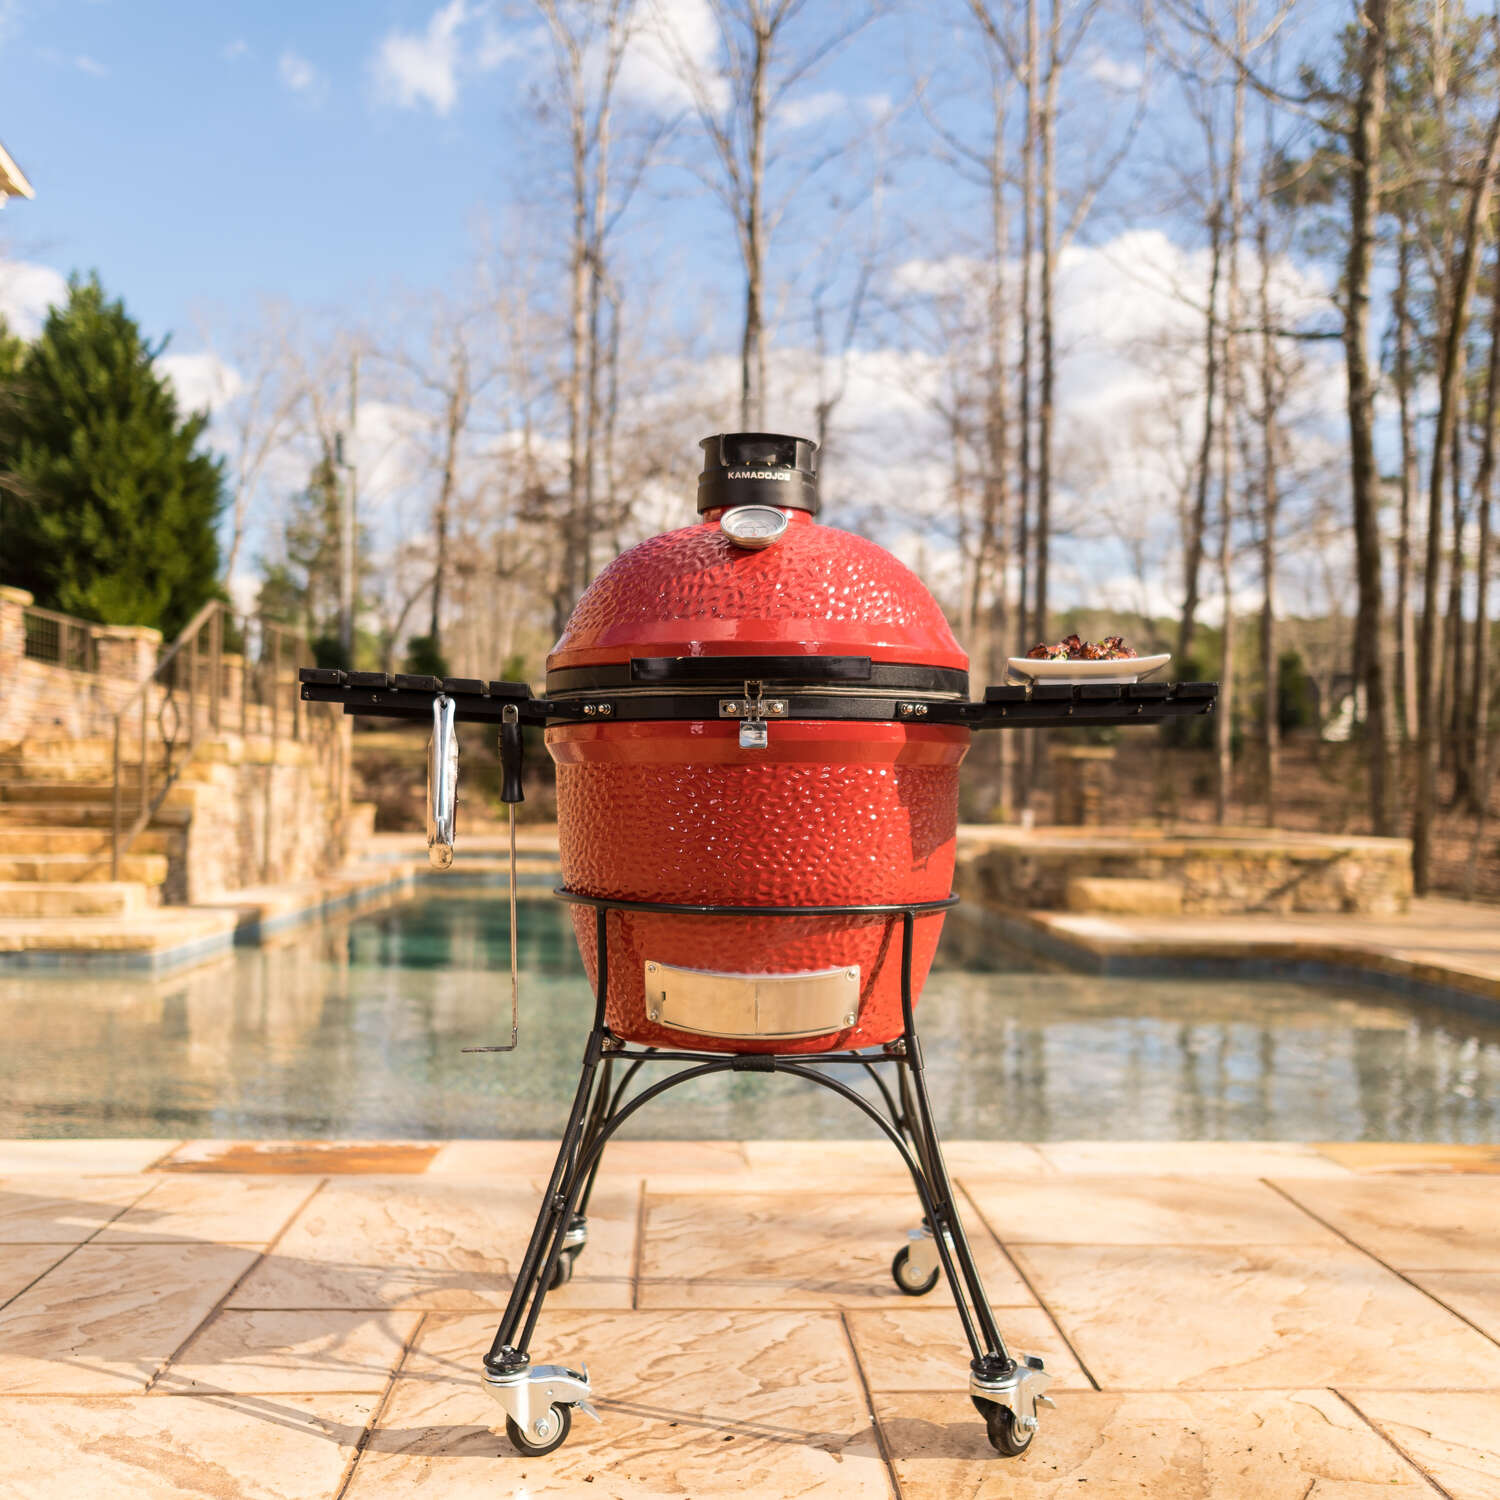 Kamado Joe  Classic Joe  Charcoal  46.5 in. W Grill  Red